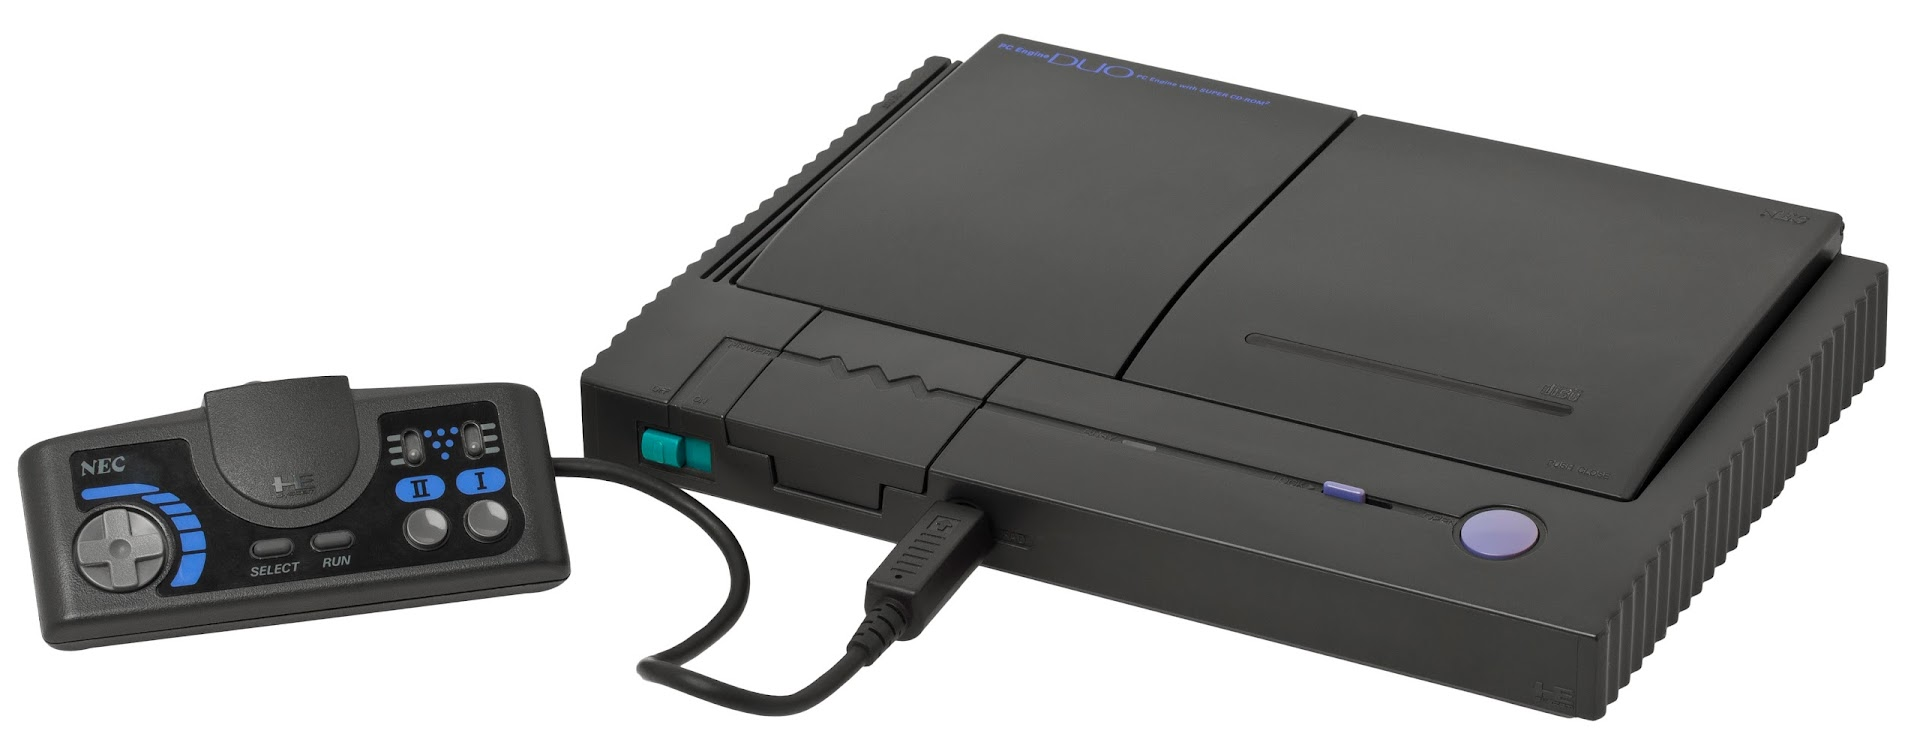 PC Engine Duo.